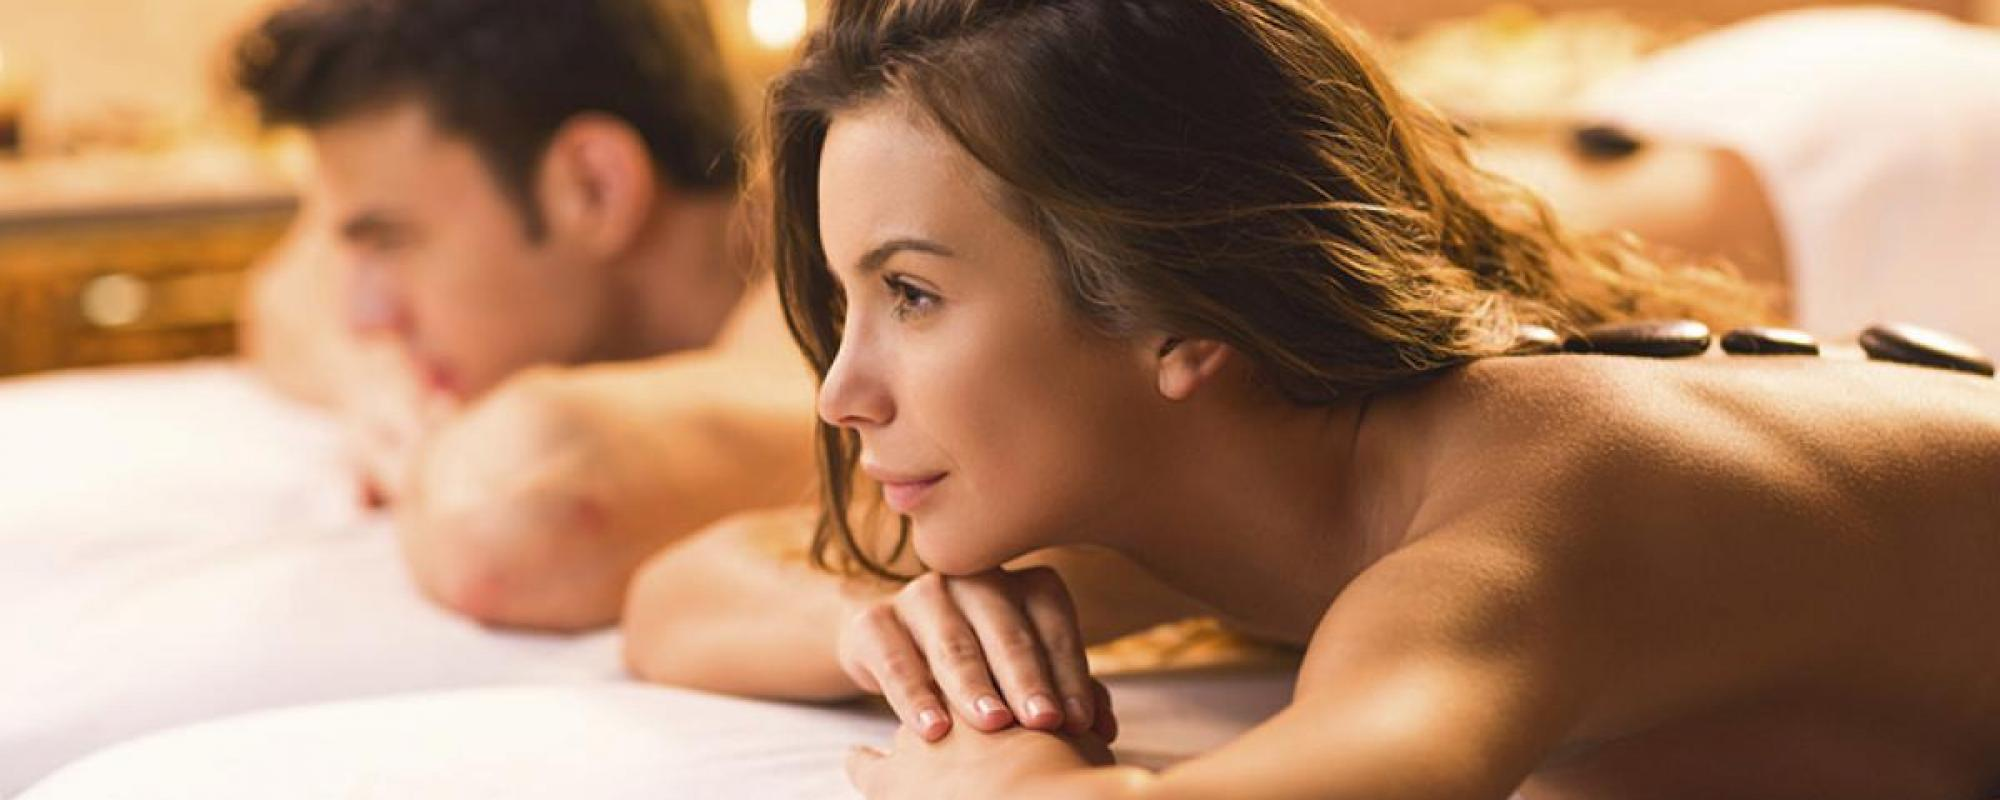 Couples Massage at Beaver Run Resort and Spa in Breckenridge